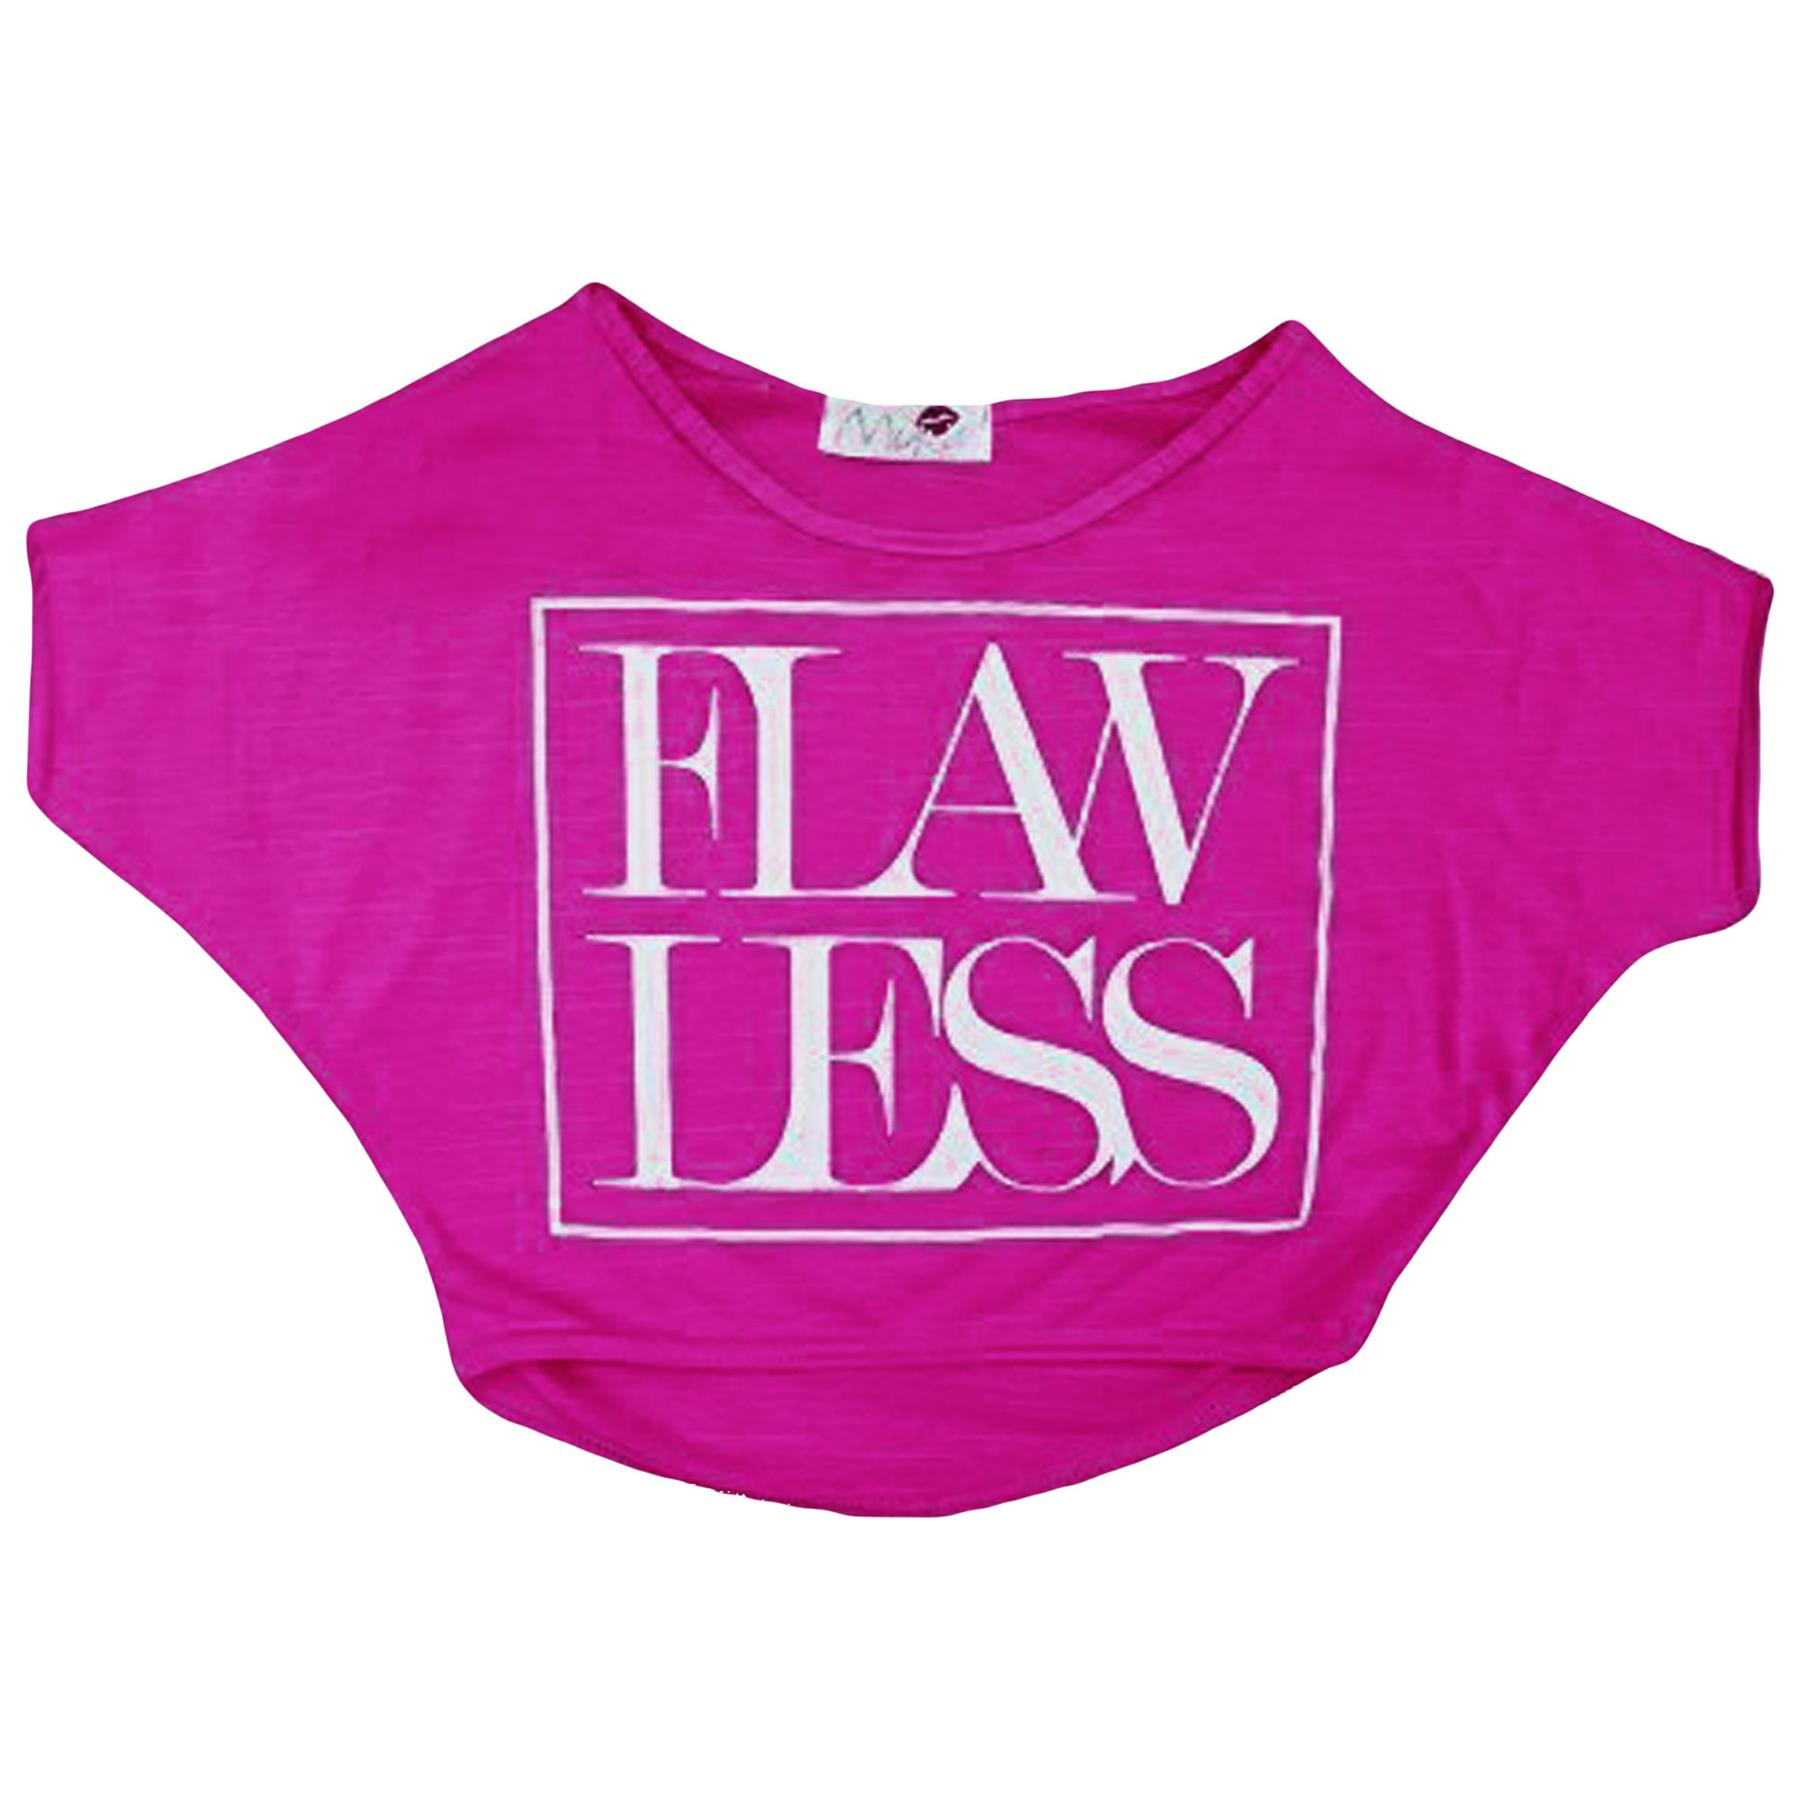 Kids-Girls-New-Season-034-FLAWLESS-034-Print-Crop-Top-Stylish-Fashion-T-Shirt-Age-7-13 miniatuur 15